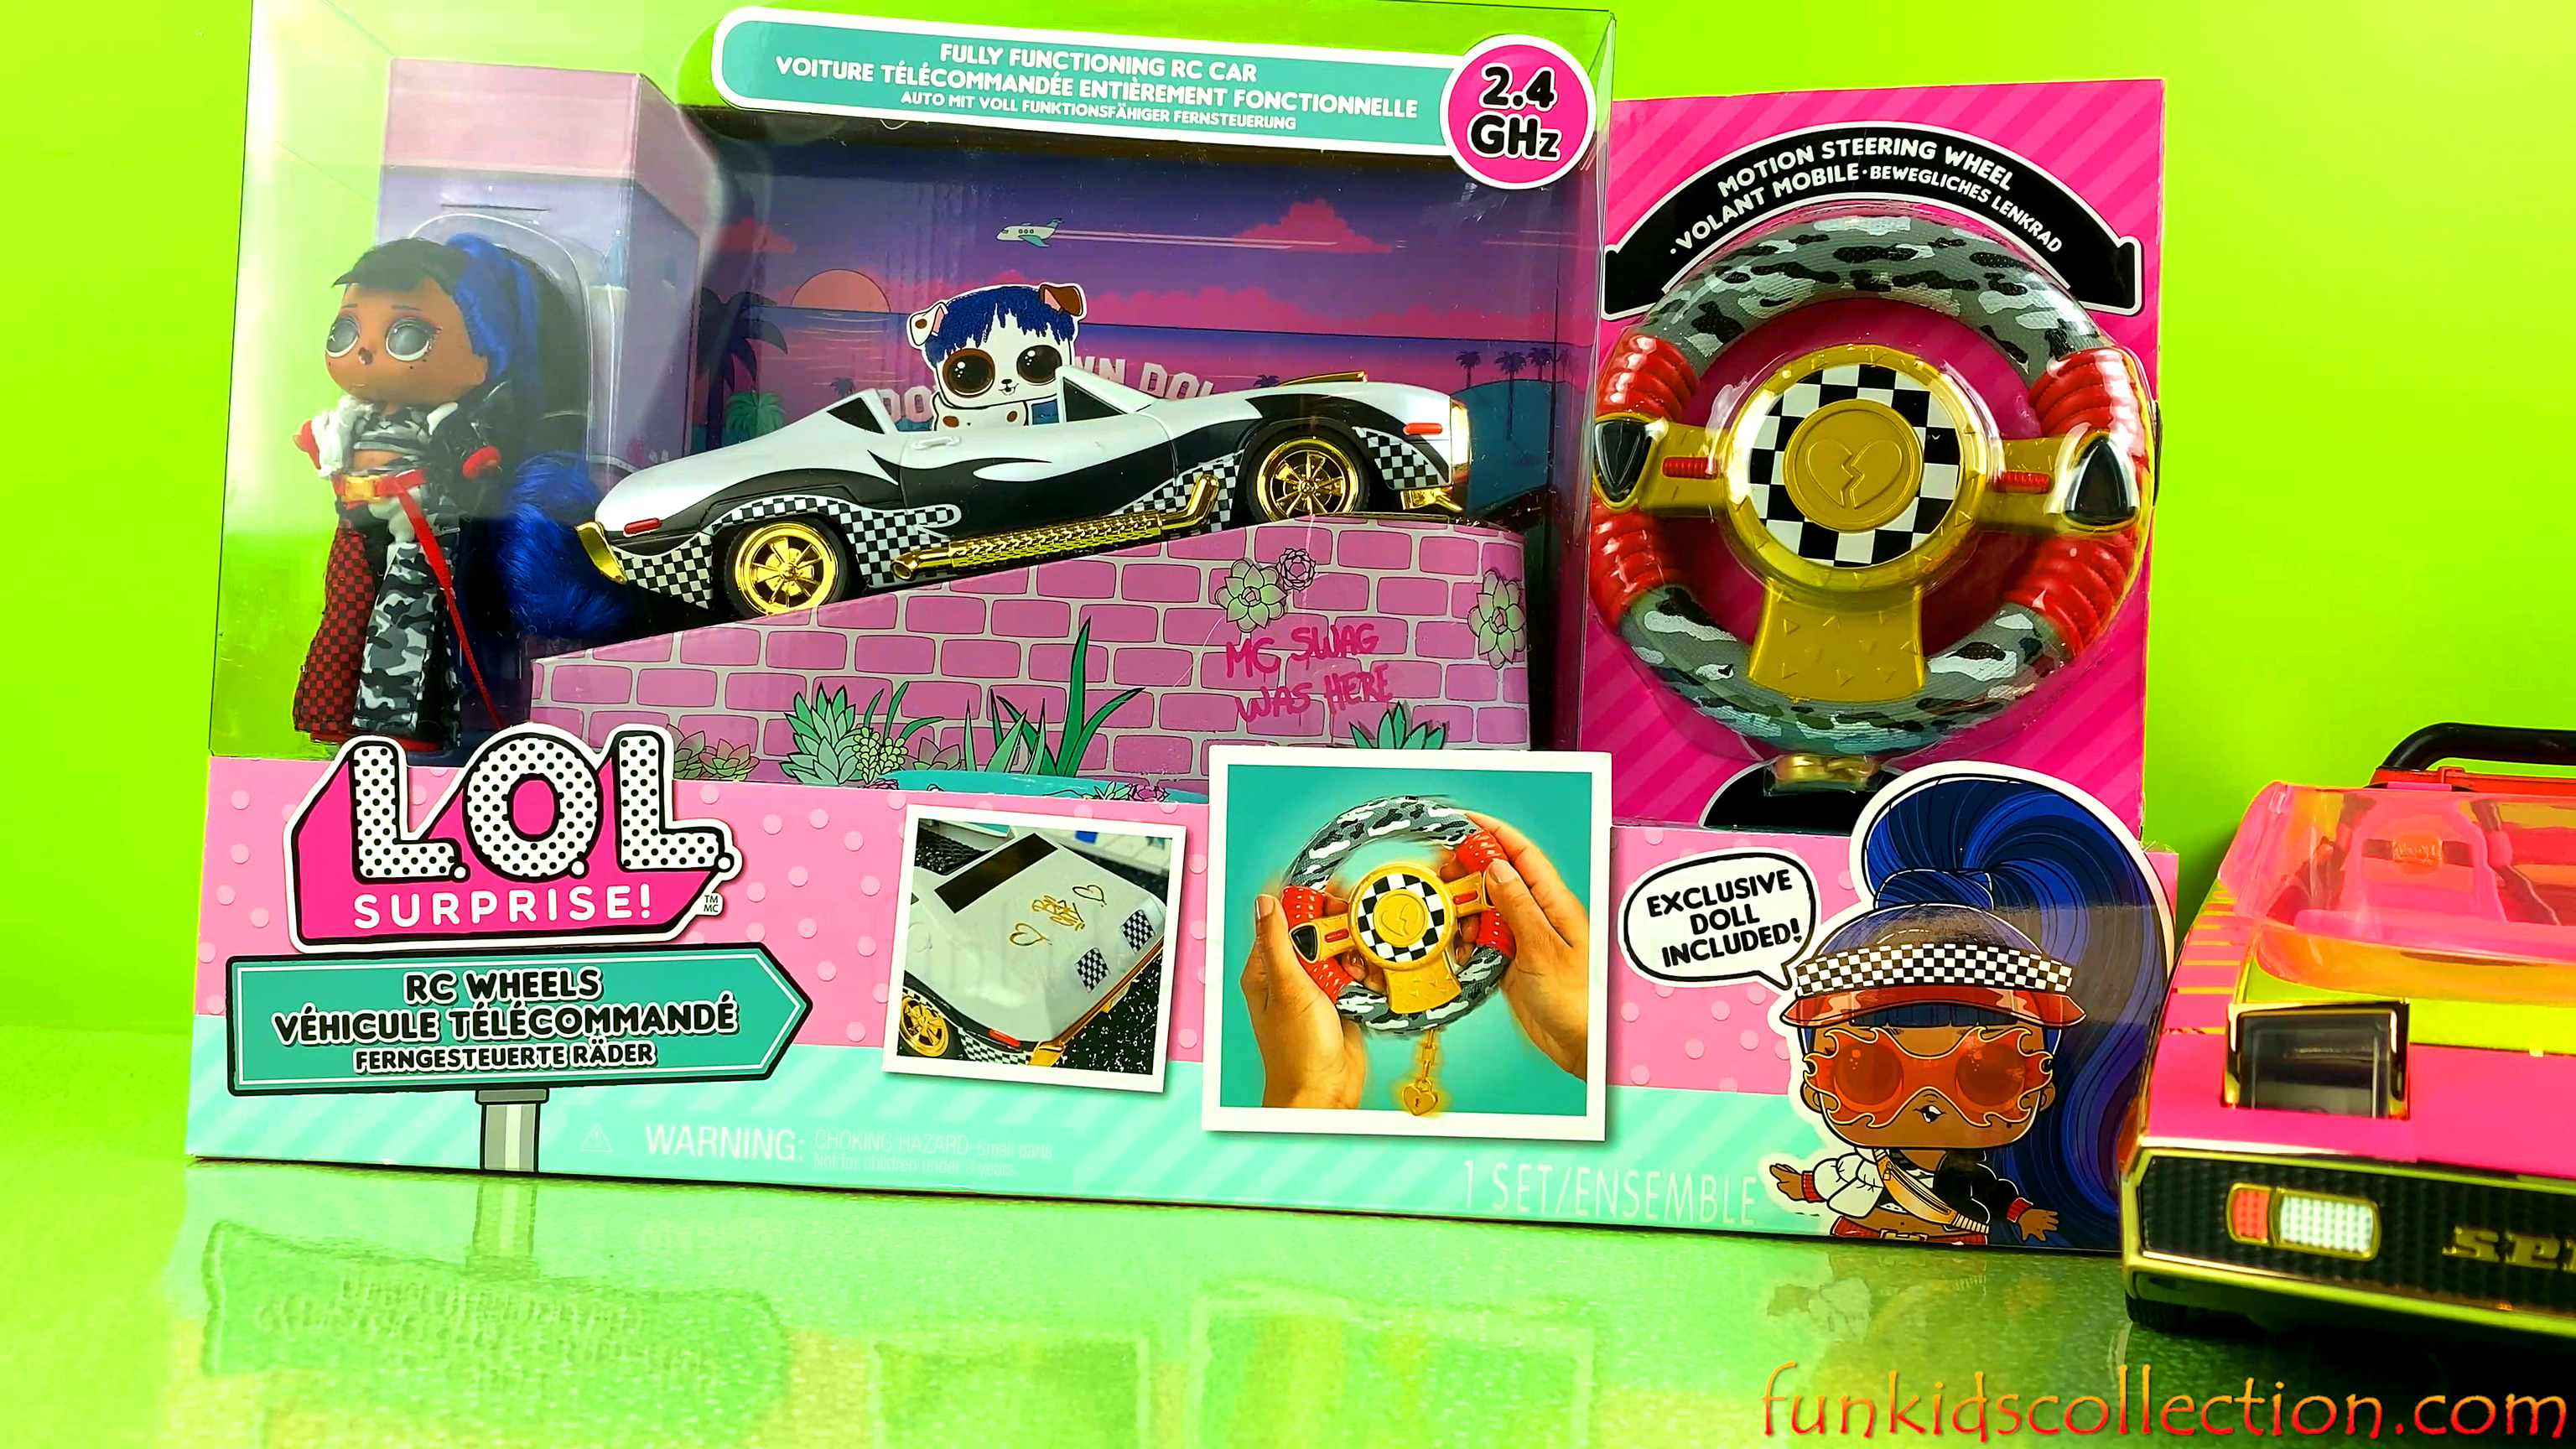 Lol Surprise Cars | Lol Surprise RC Wheels Car Unboxing | Opening Lol Surprise Blind Bags | EBD Toys